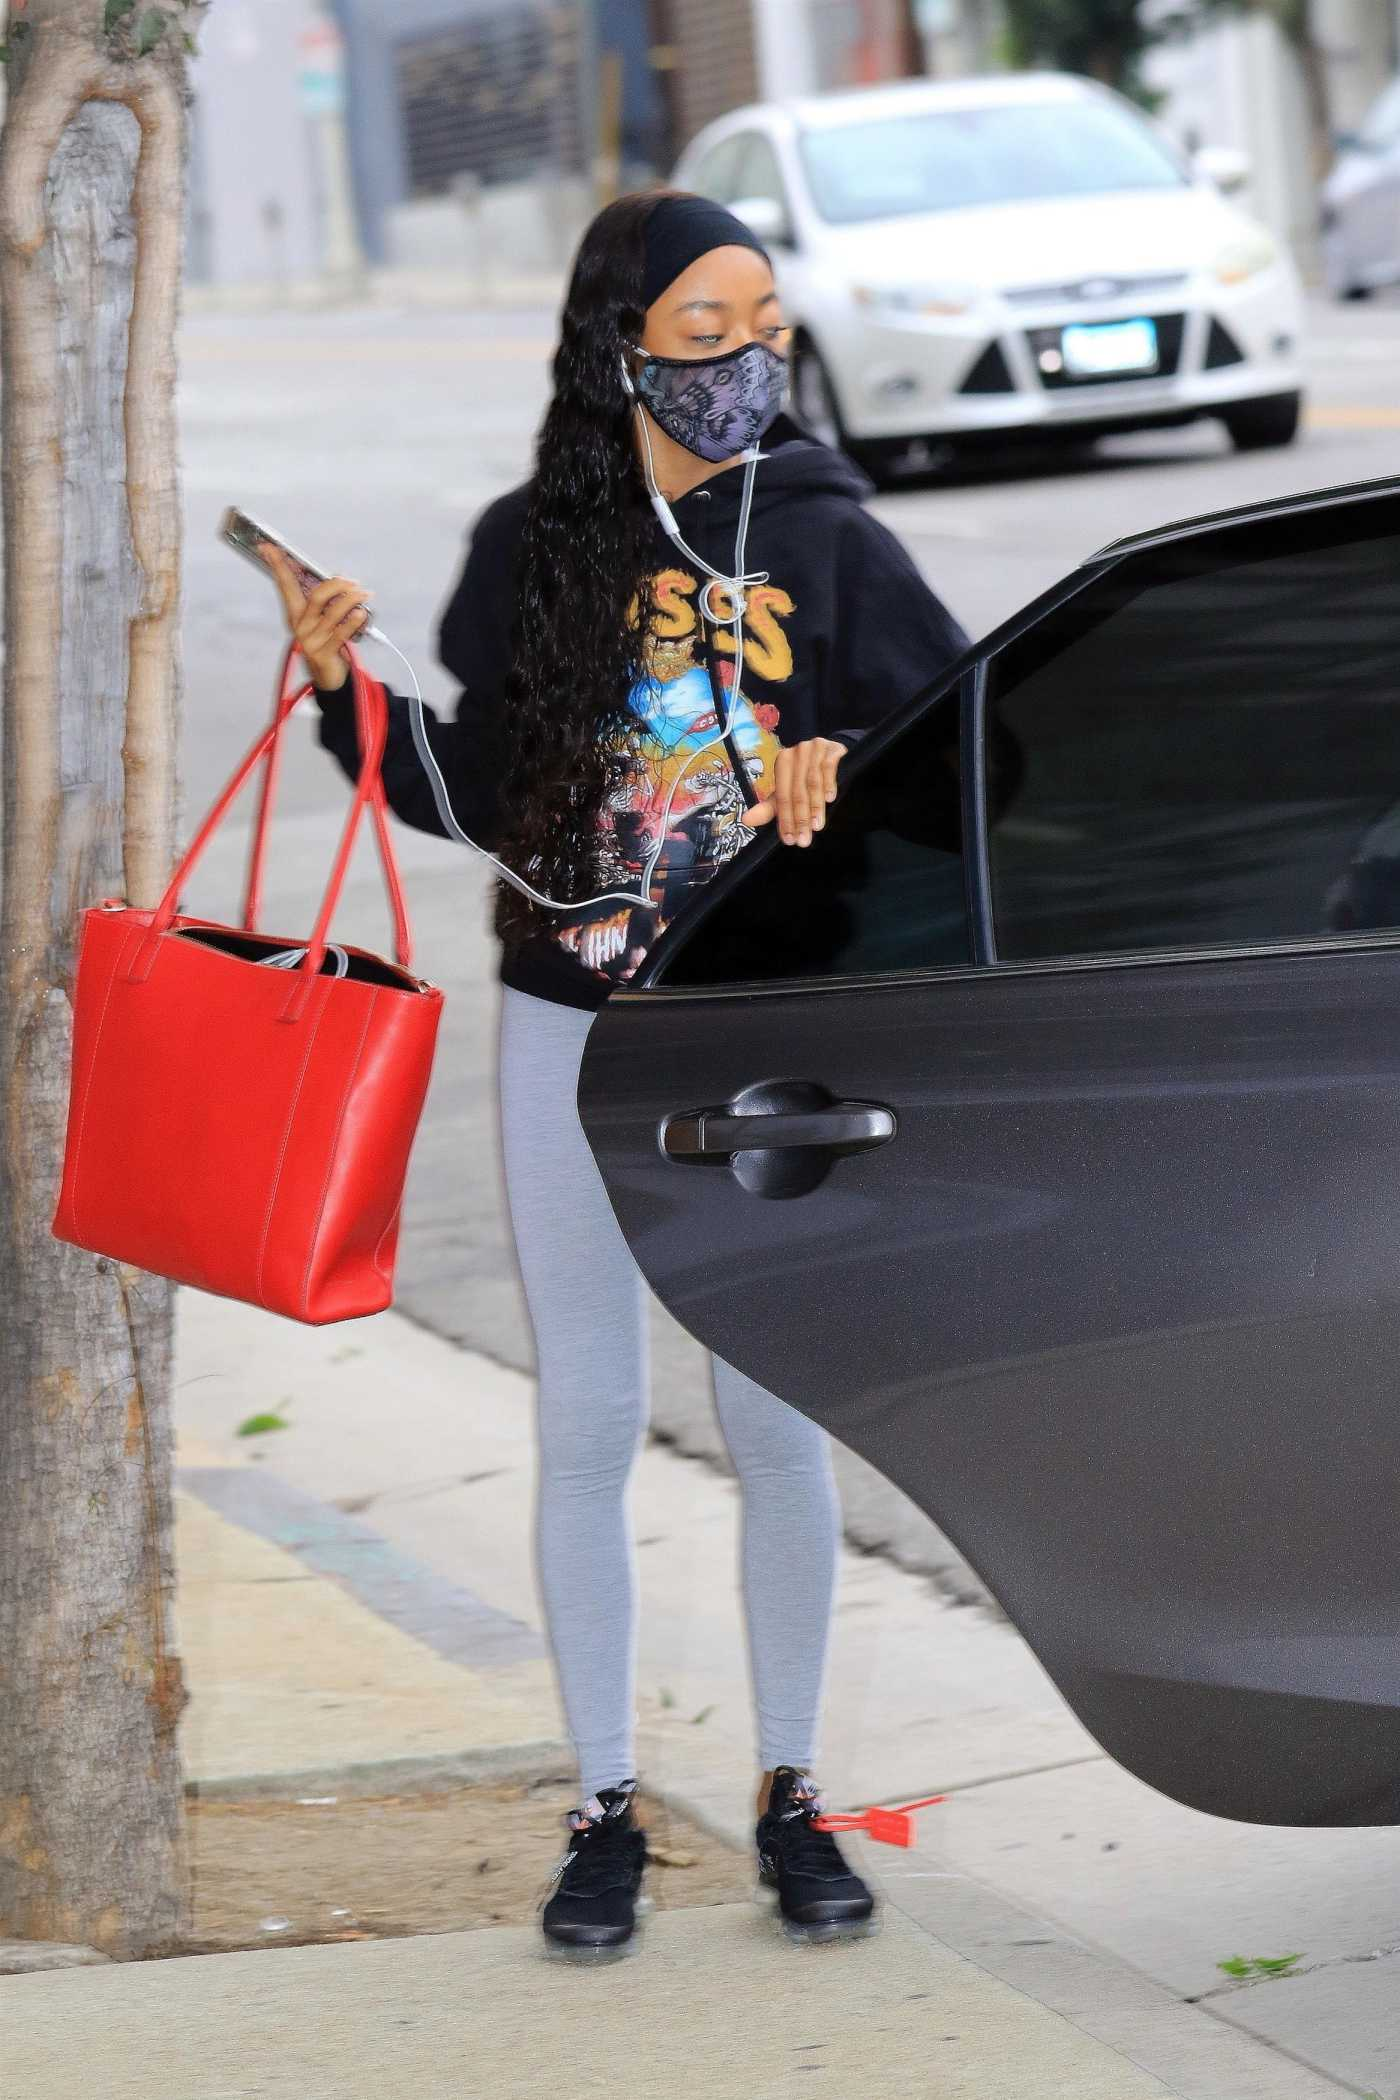 Skai Jackson in a Black Hoodie Arrives at the DWTS Studio in Los Angeles 10/23/2020